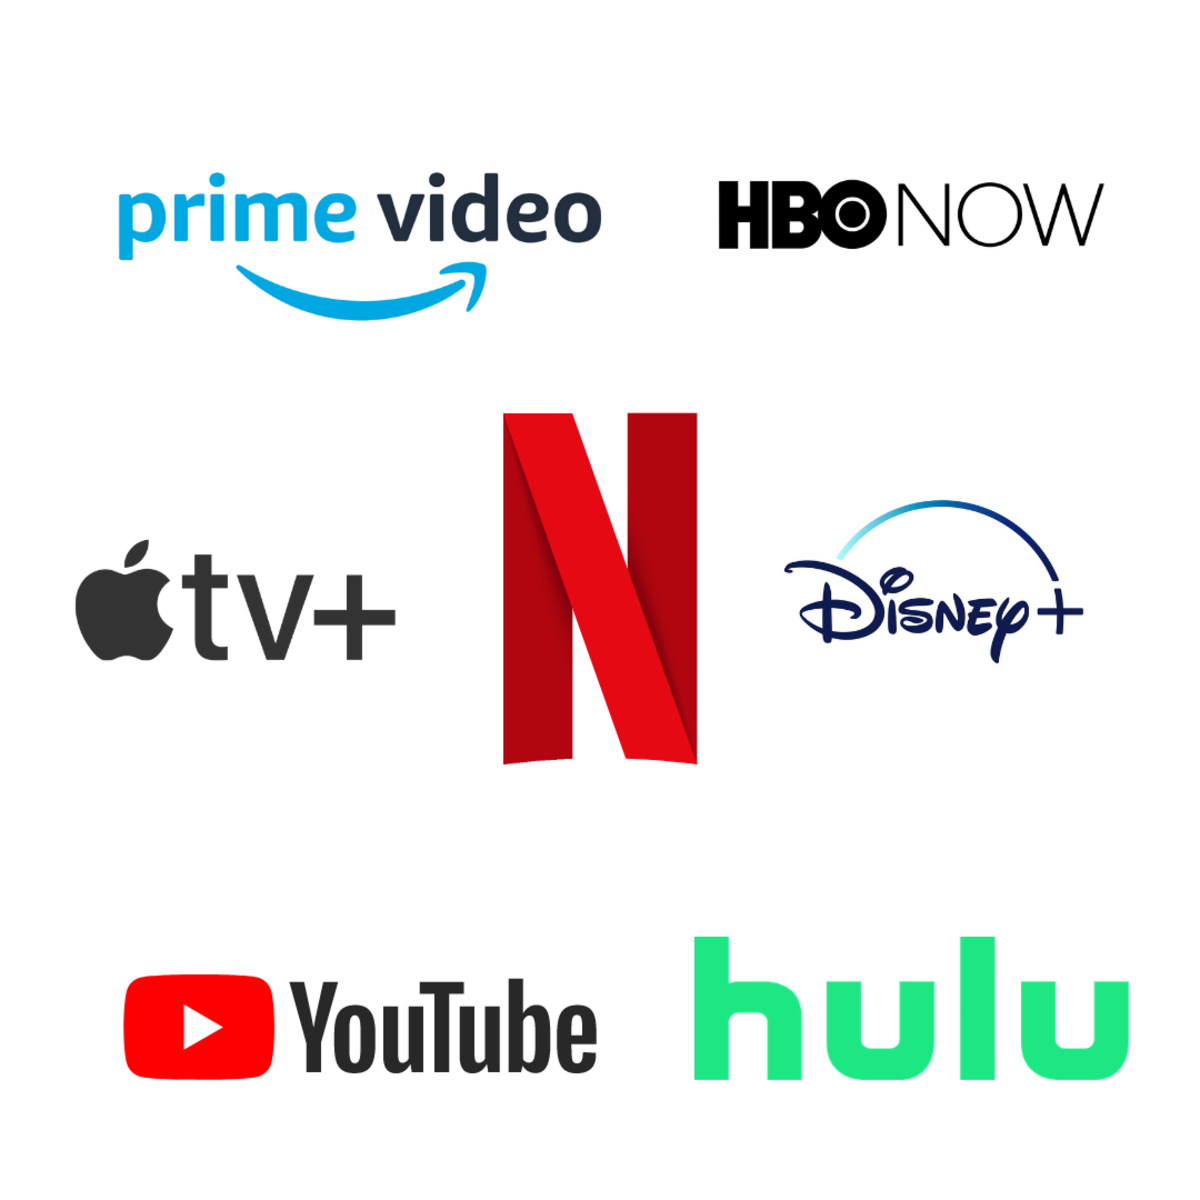 This graphic shows the Netflix logo surrounded by the logos of some of the platforms main competitors.